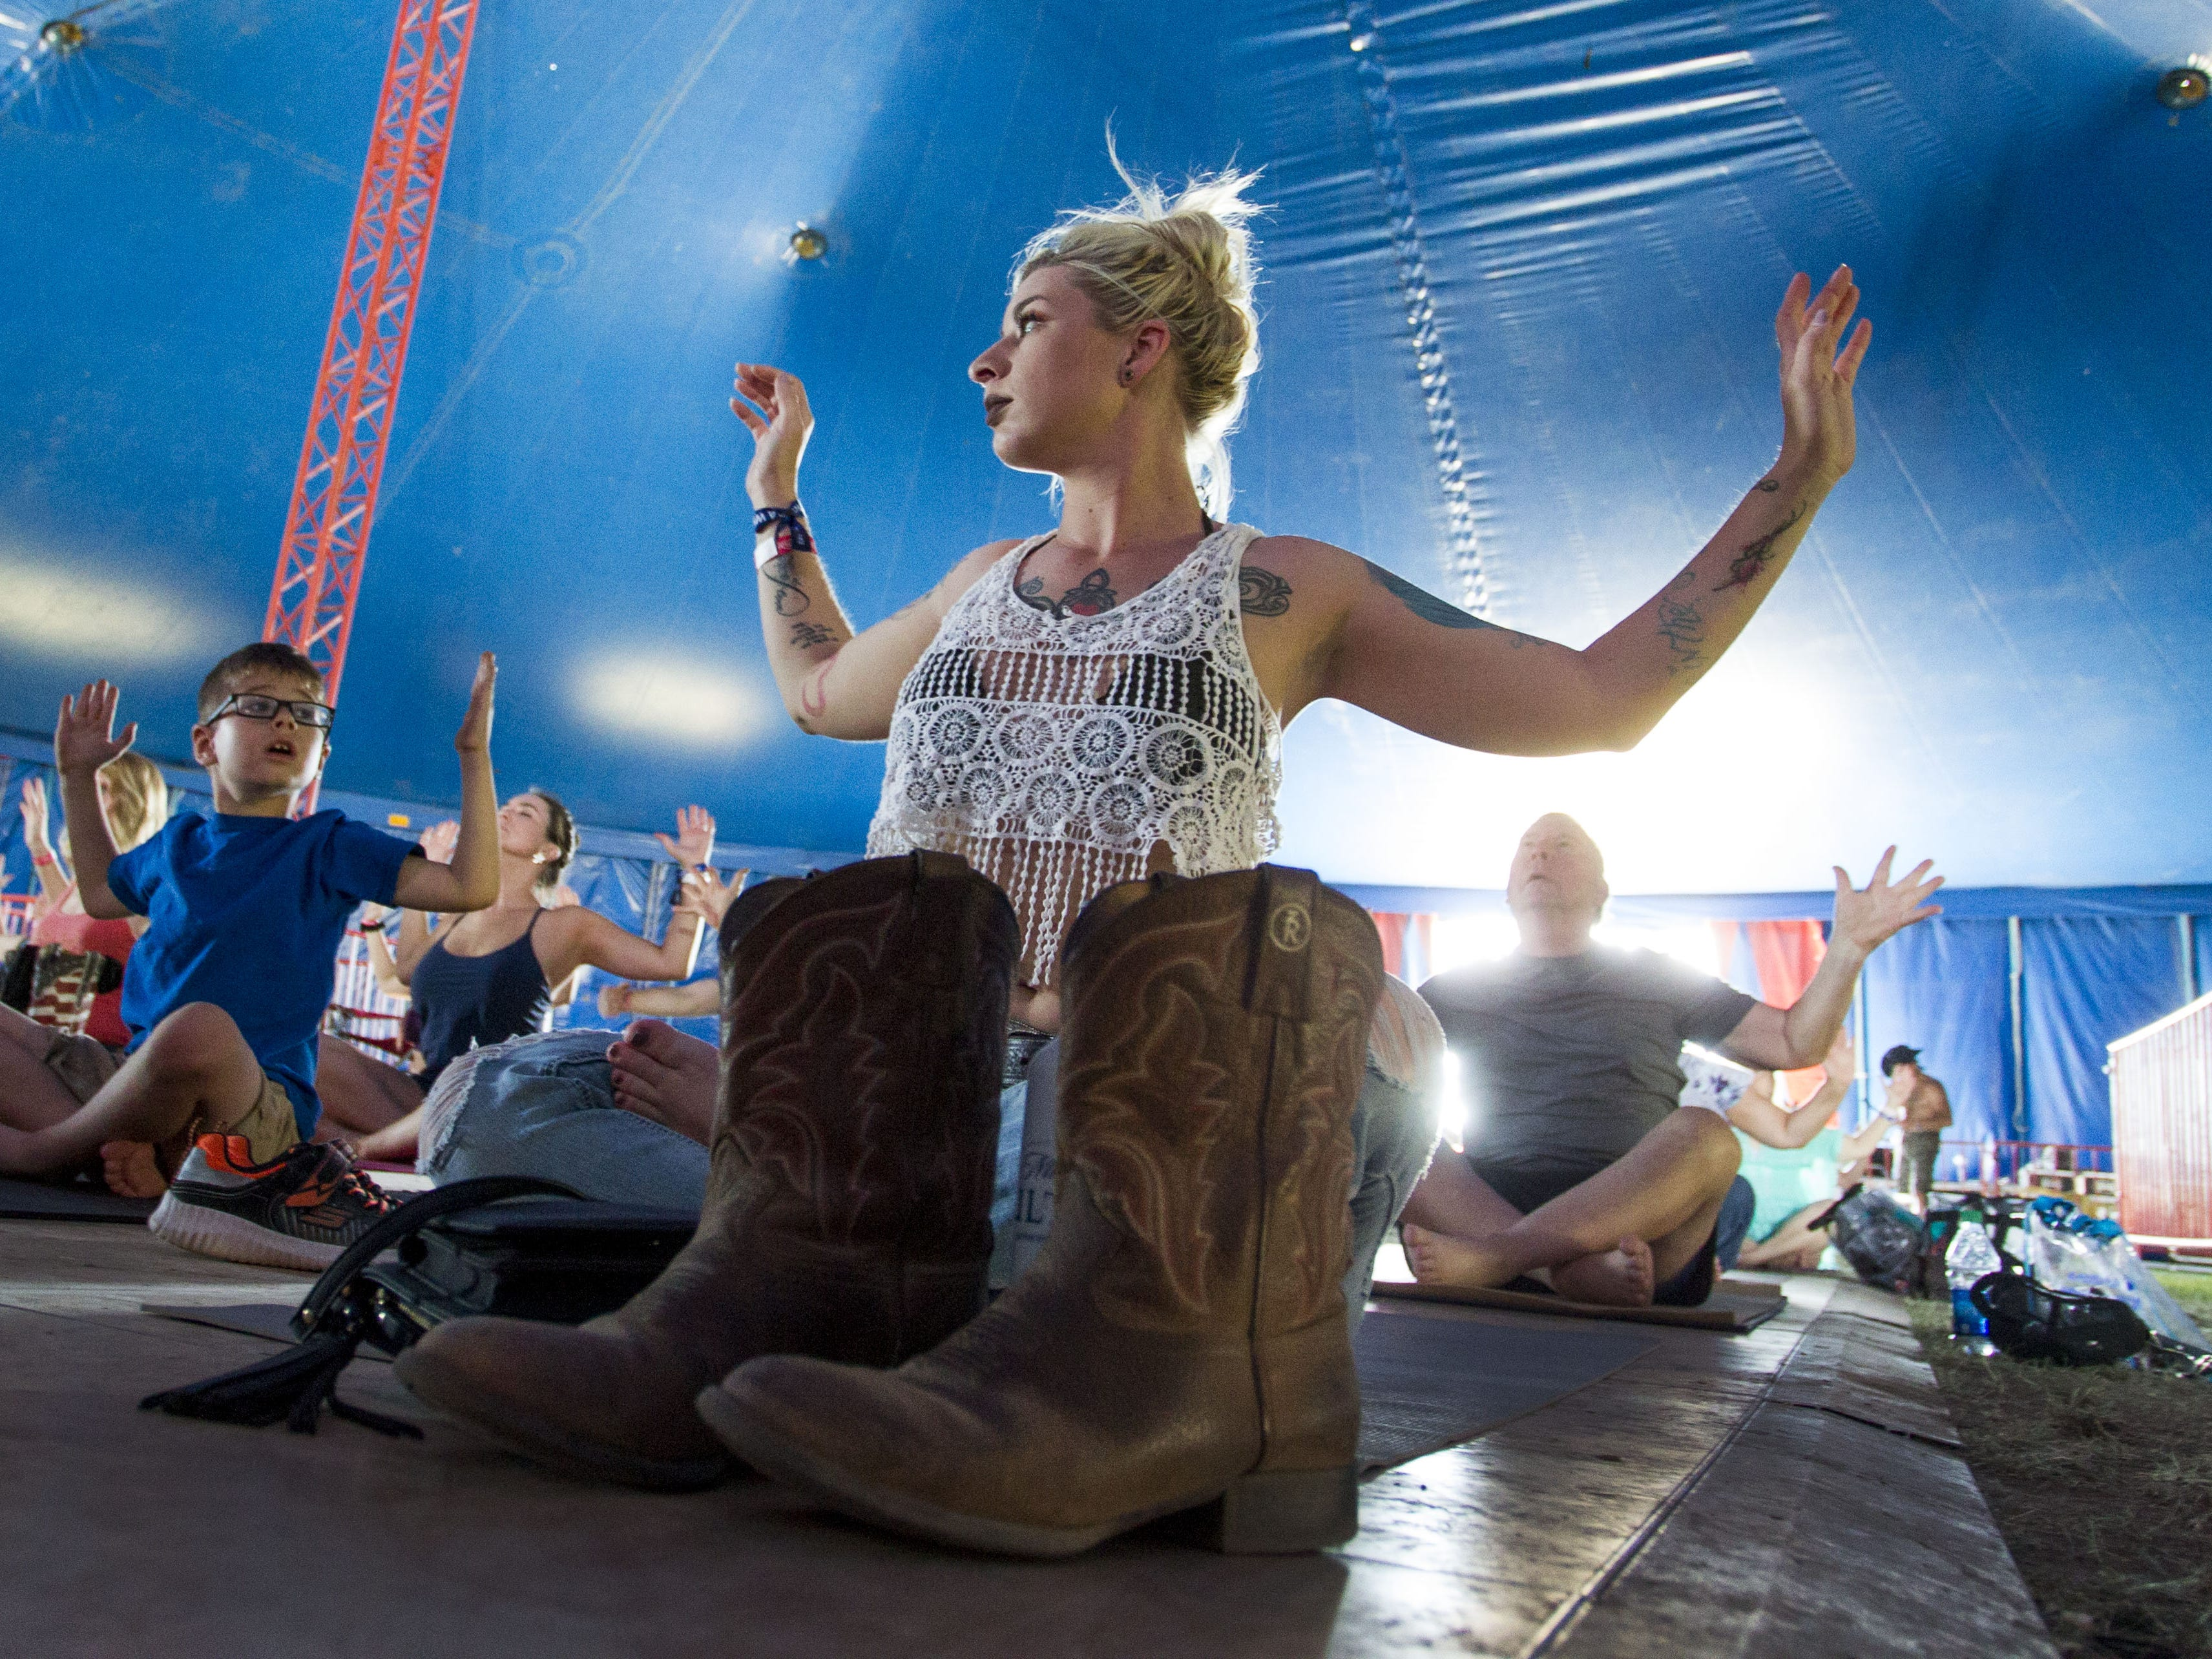 Sarah Owens of Florence stretches with her son Tyler, 6, during a yoga session at Country Thunder Arizona Saturday, April 13, 2019, in Florence, Ariz.